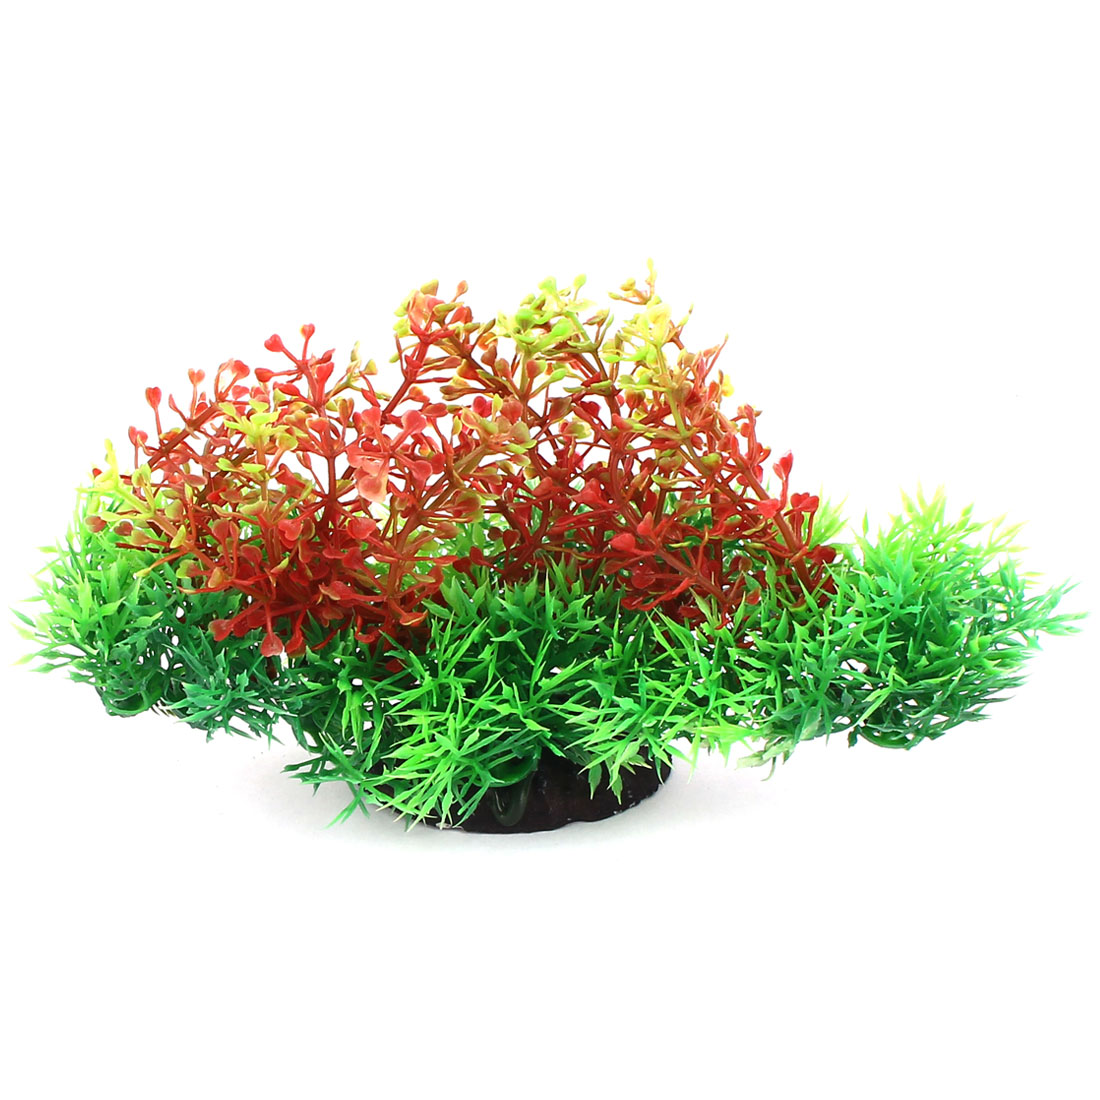 Green Red Plastic Artifical Aquarium Plant Underwater Grass Decor for Fishbowl Fish Tank